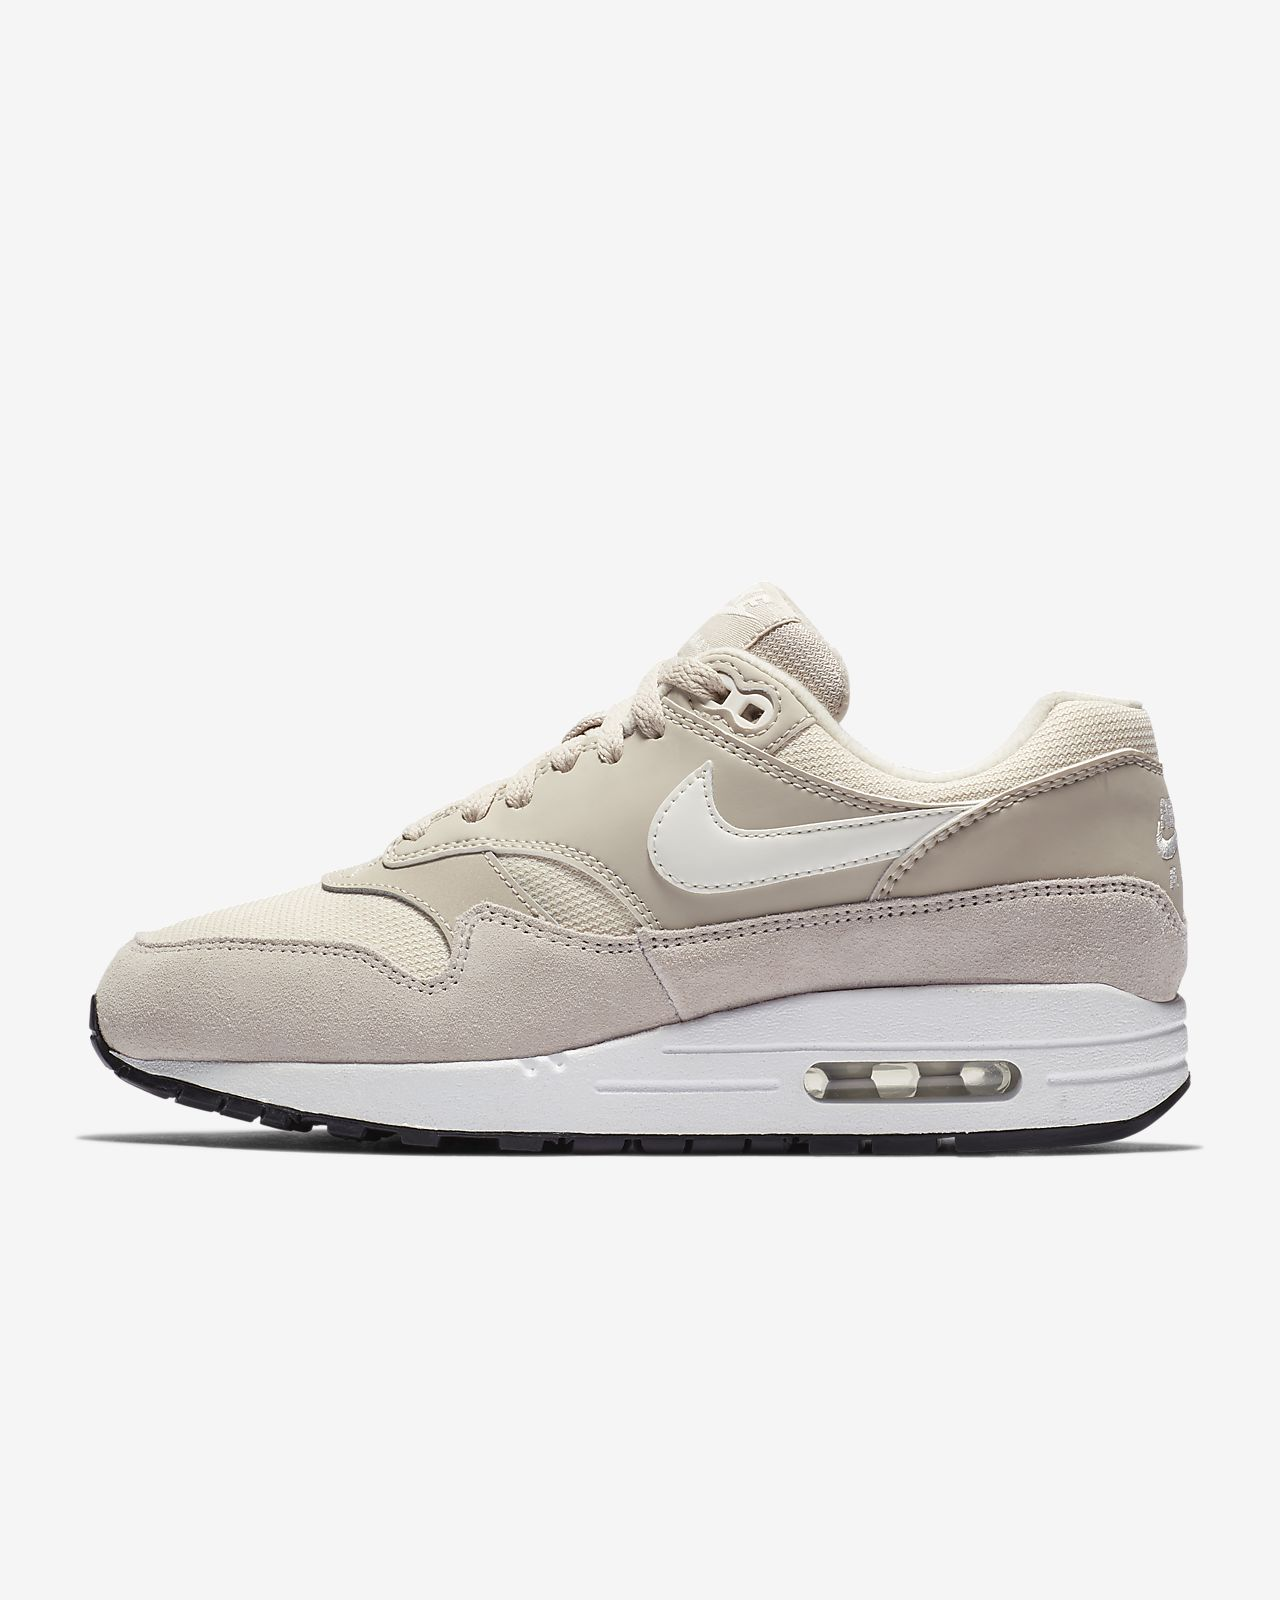 Nike Chaussure 1 Max Femme Pour Be Air PnRBF4